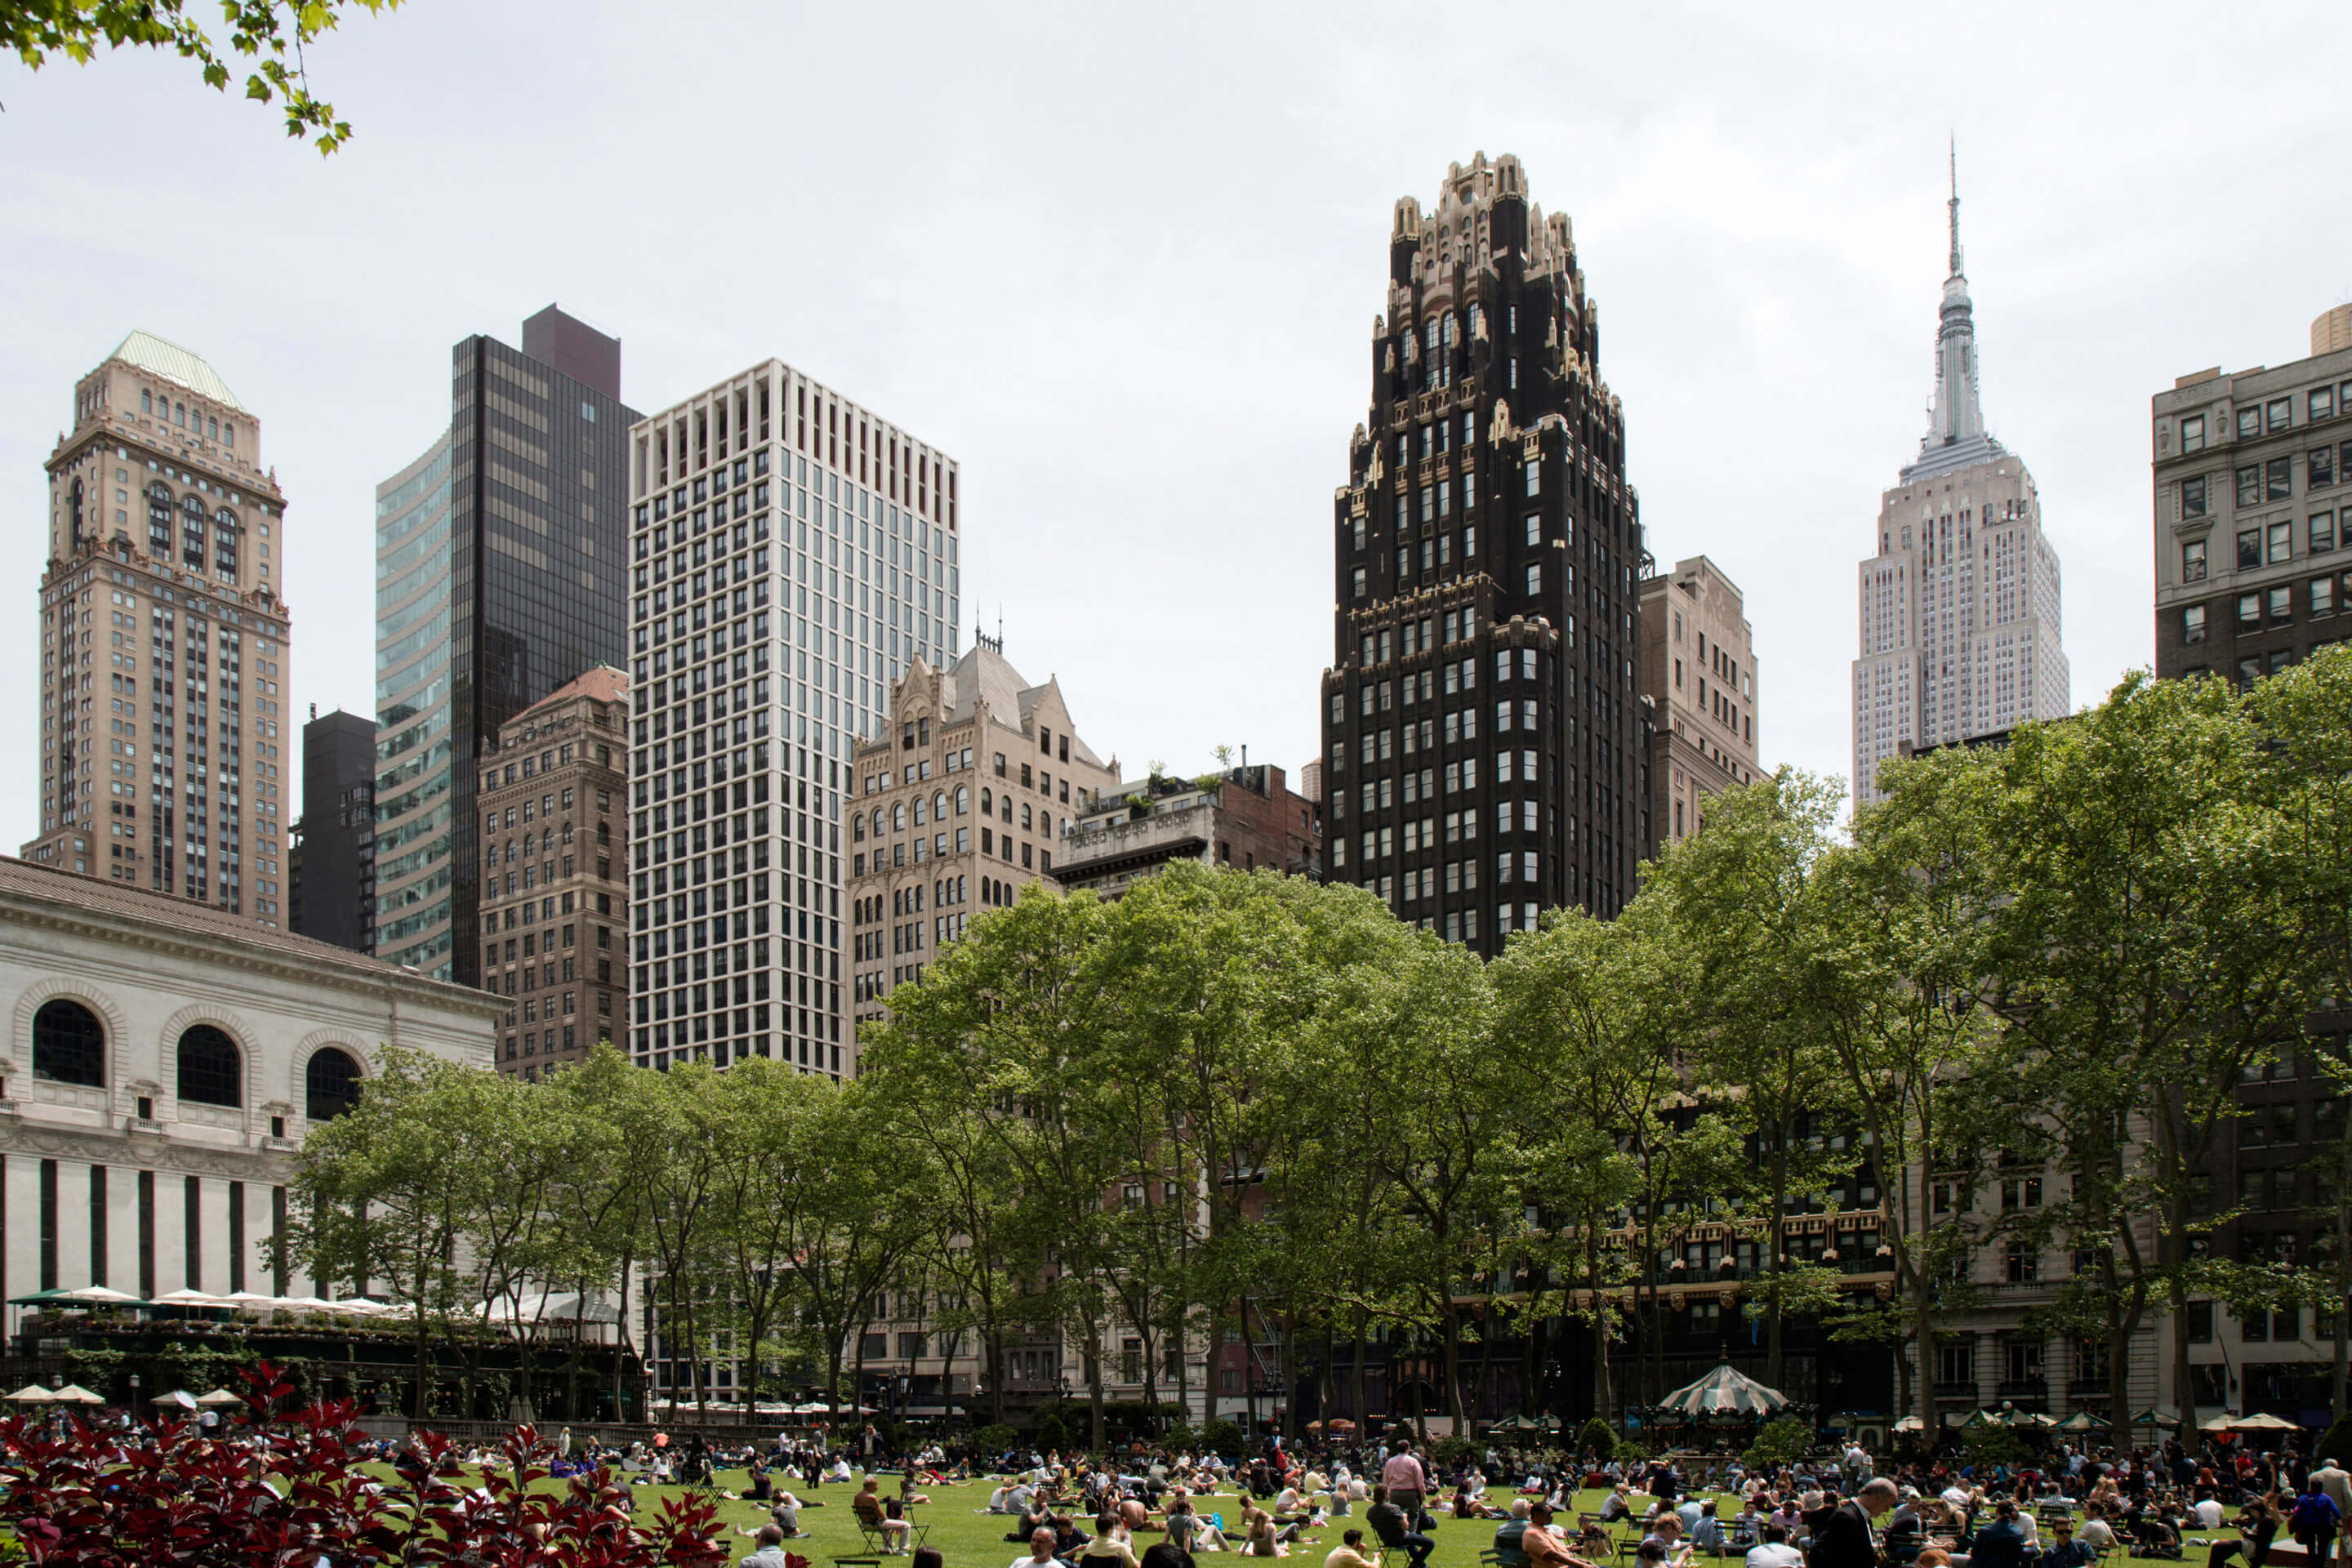 image of several buildings including The Byrant. View is from Bryant Park and includes trees